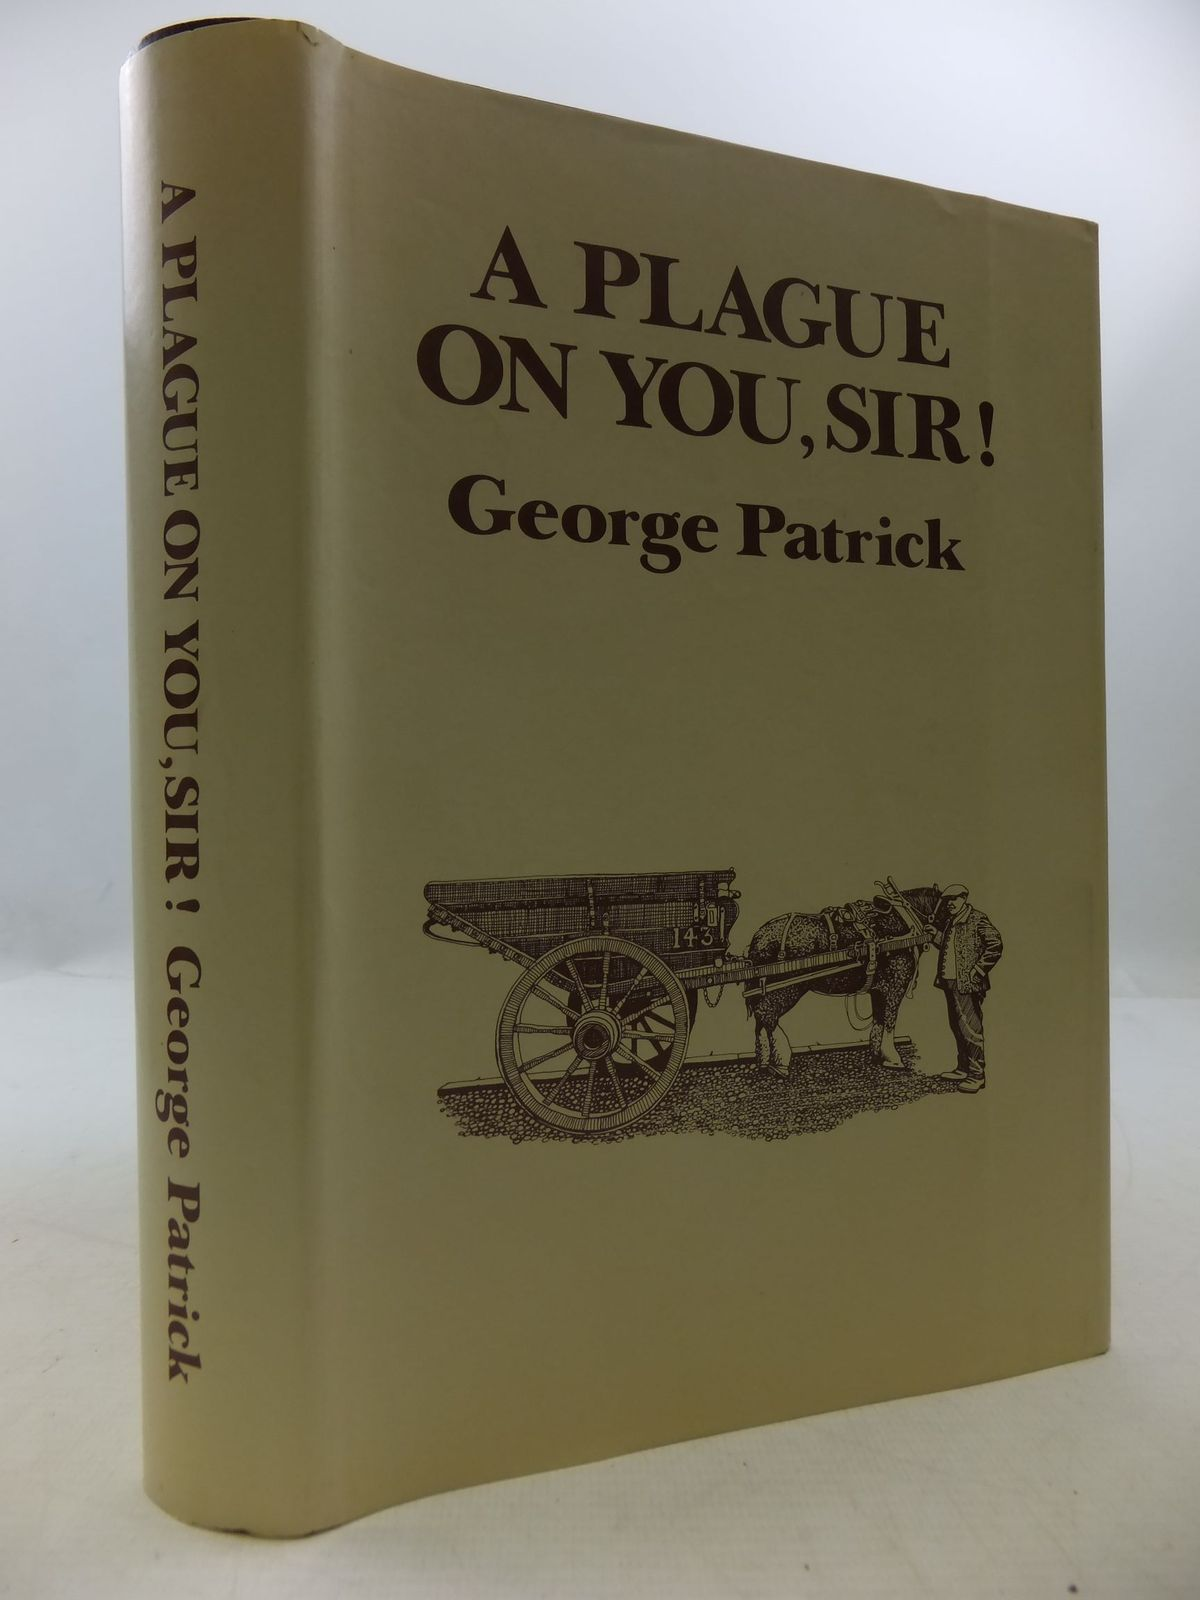 Photo of A PLAGUE ON YOU, SIR written by Patrick, George published by George Patrick (STOCK CODE: 1708851)  for sale by Stella & Rose's Books